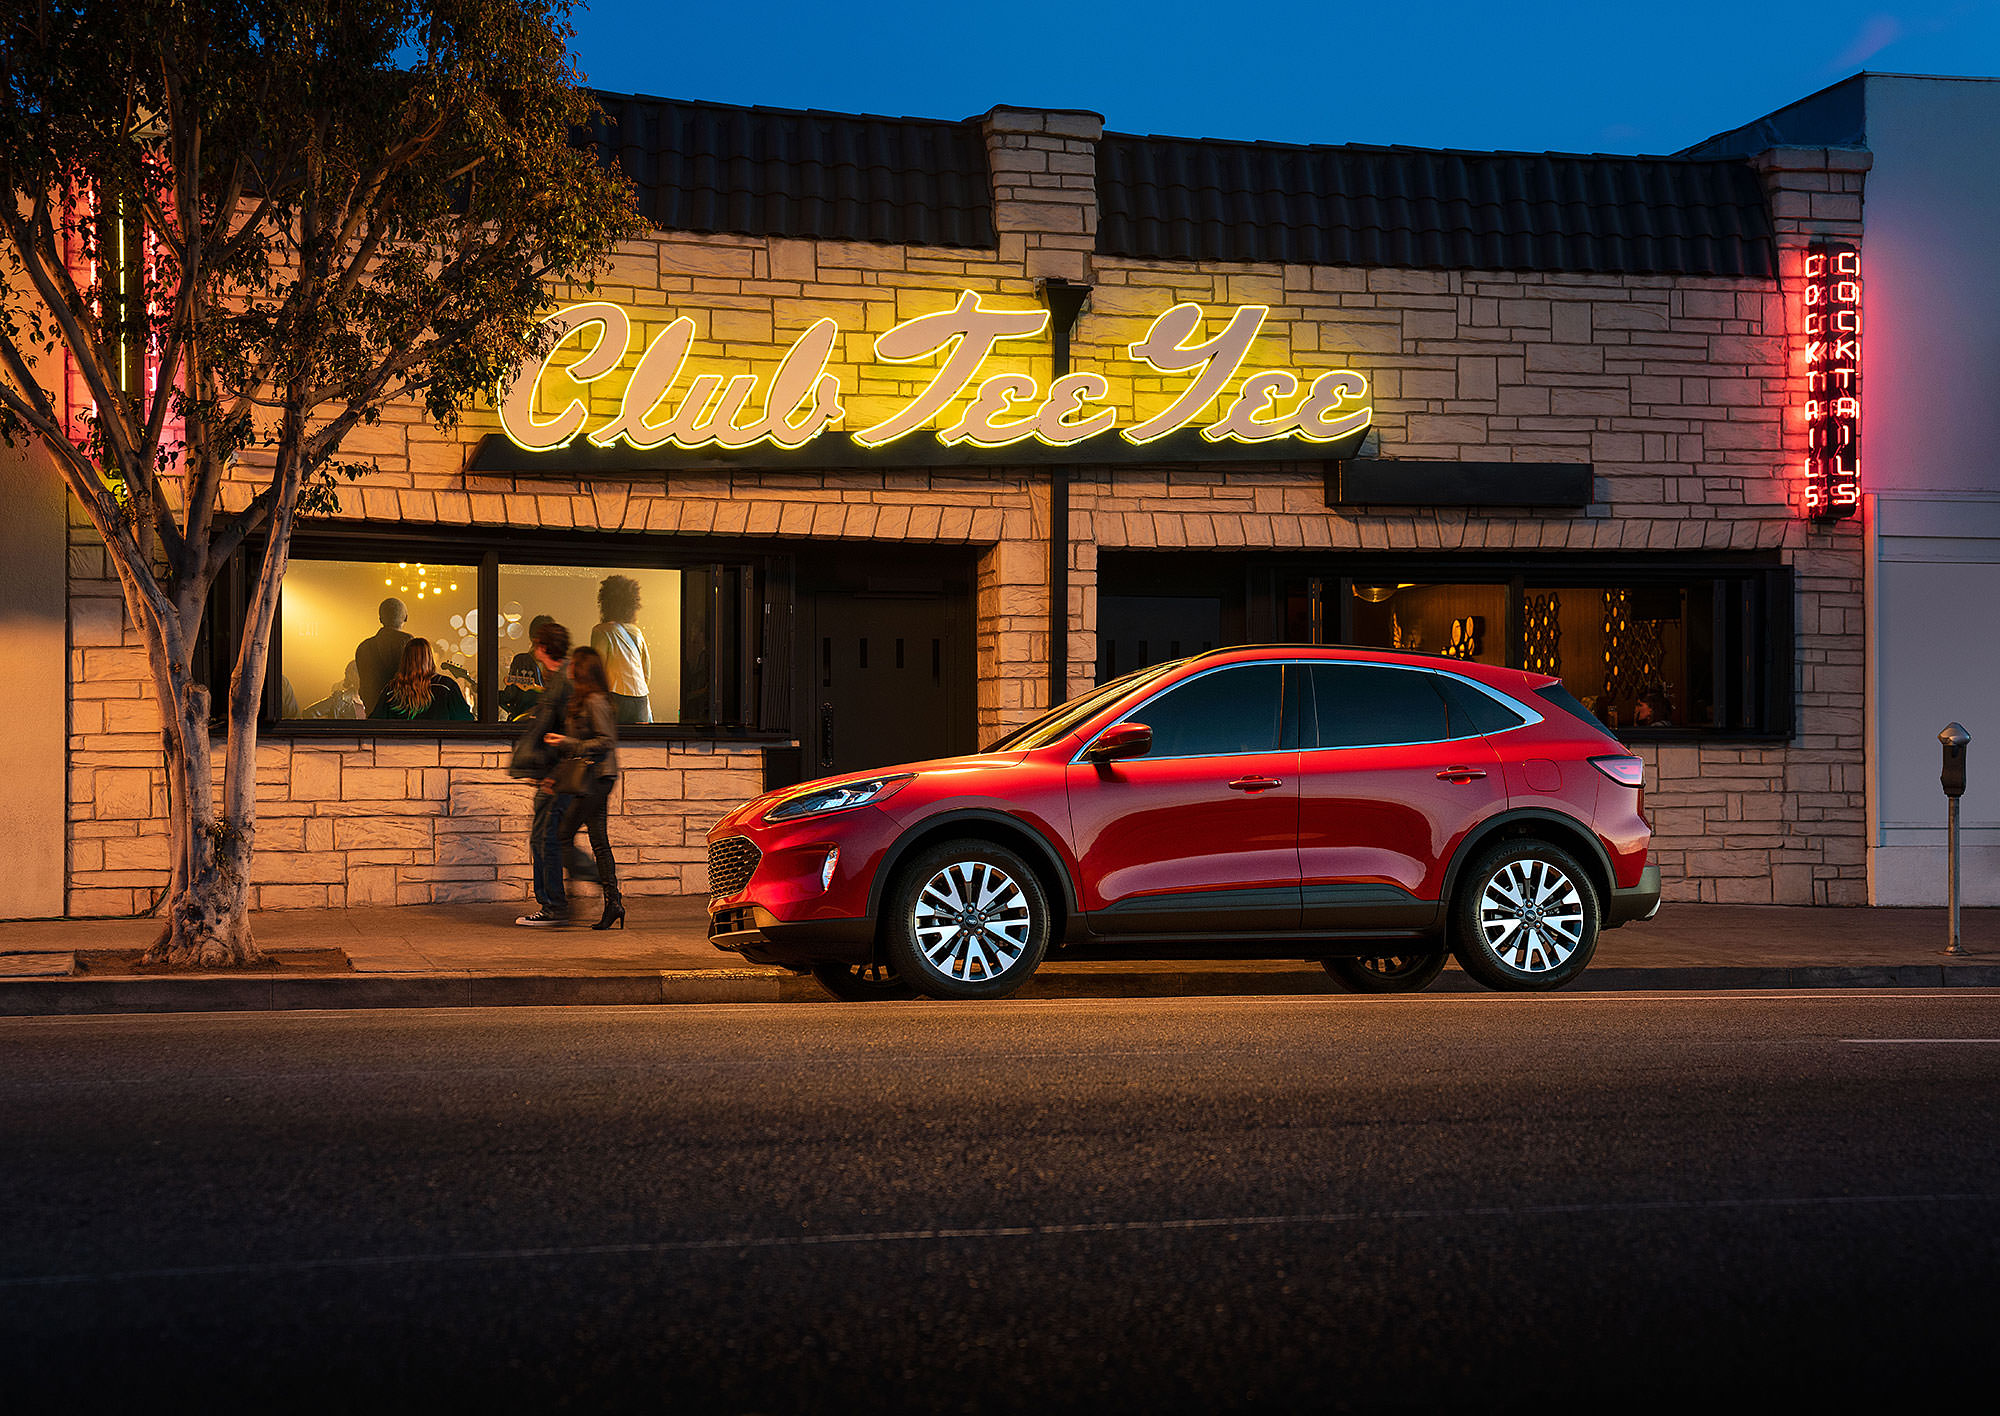 2020 Ford Escape commercial photography in Los Angeles, CA